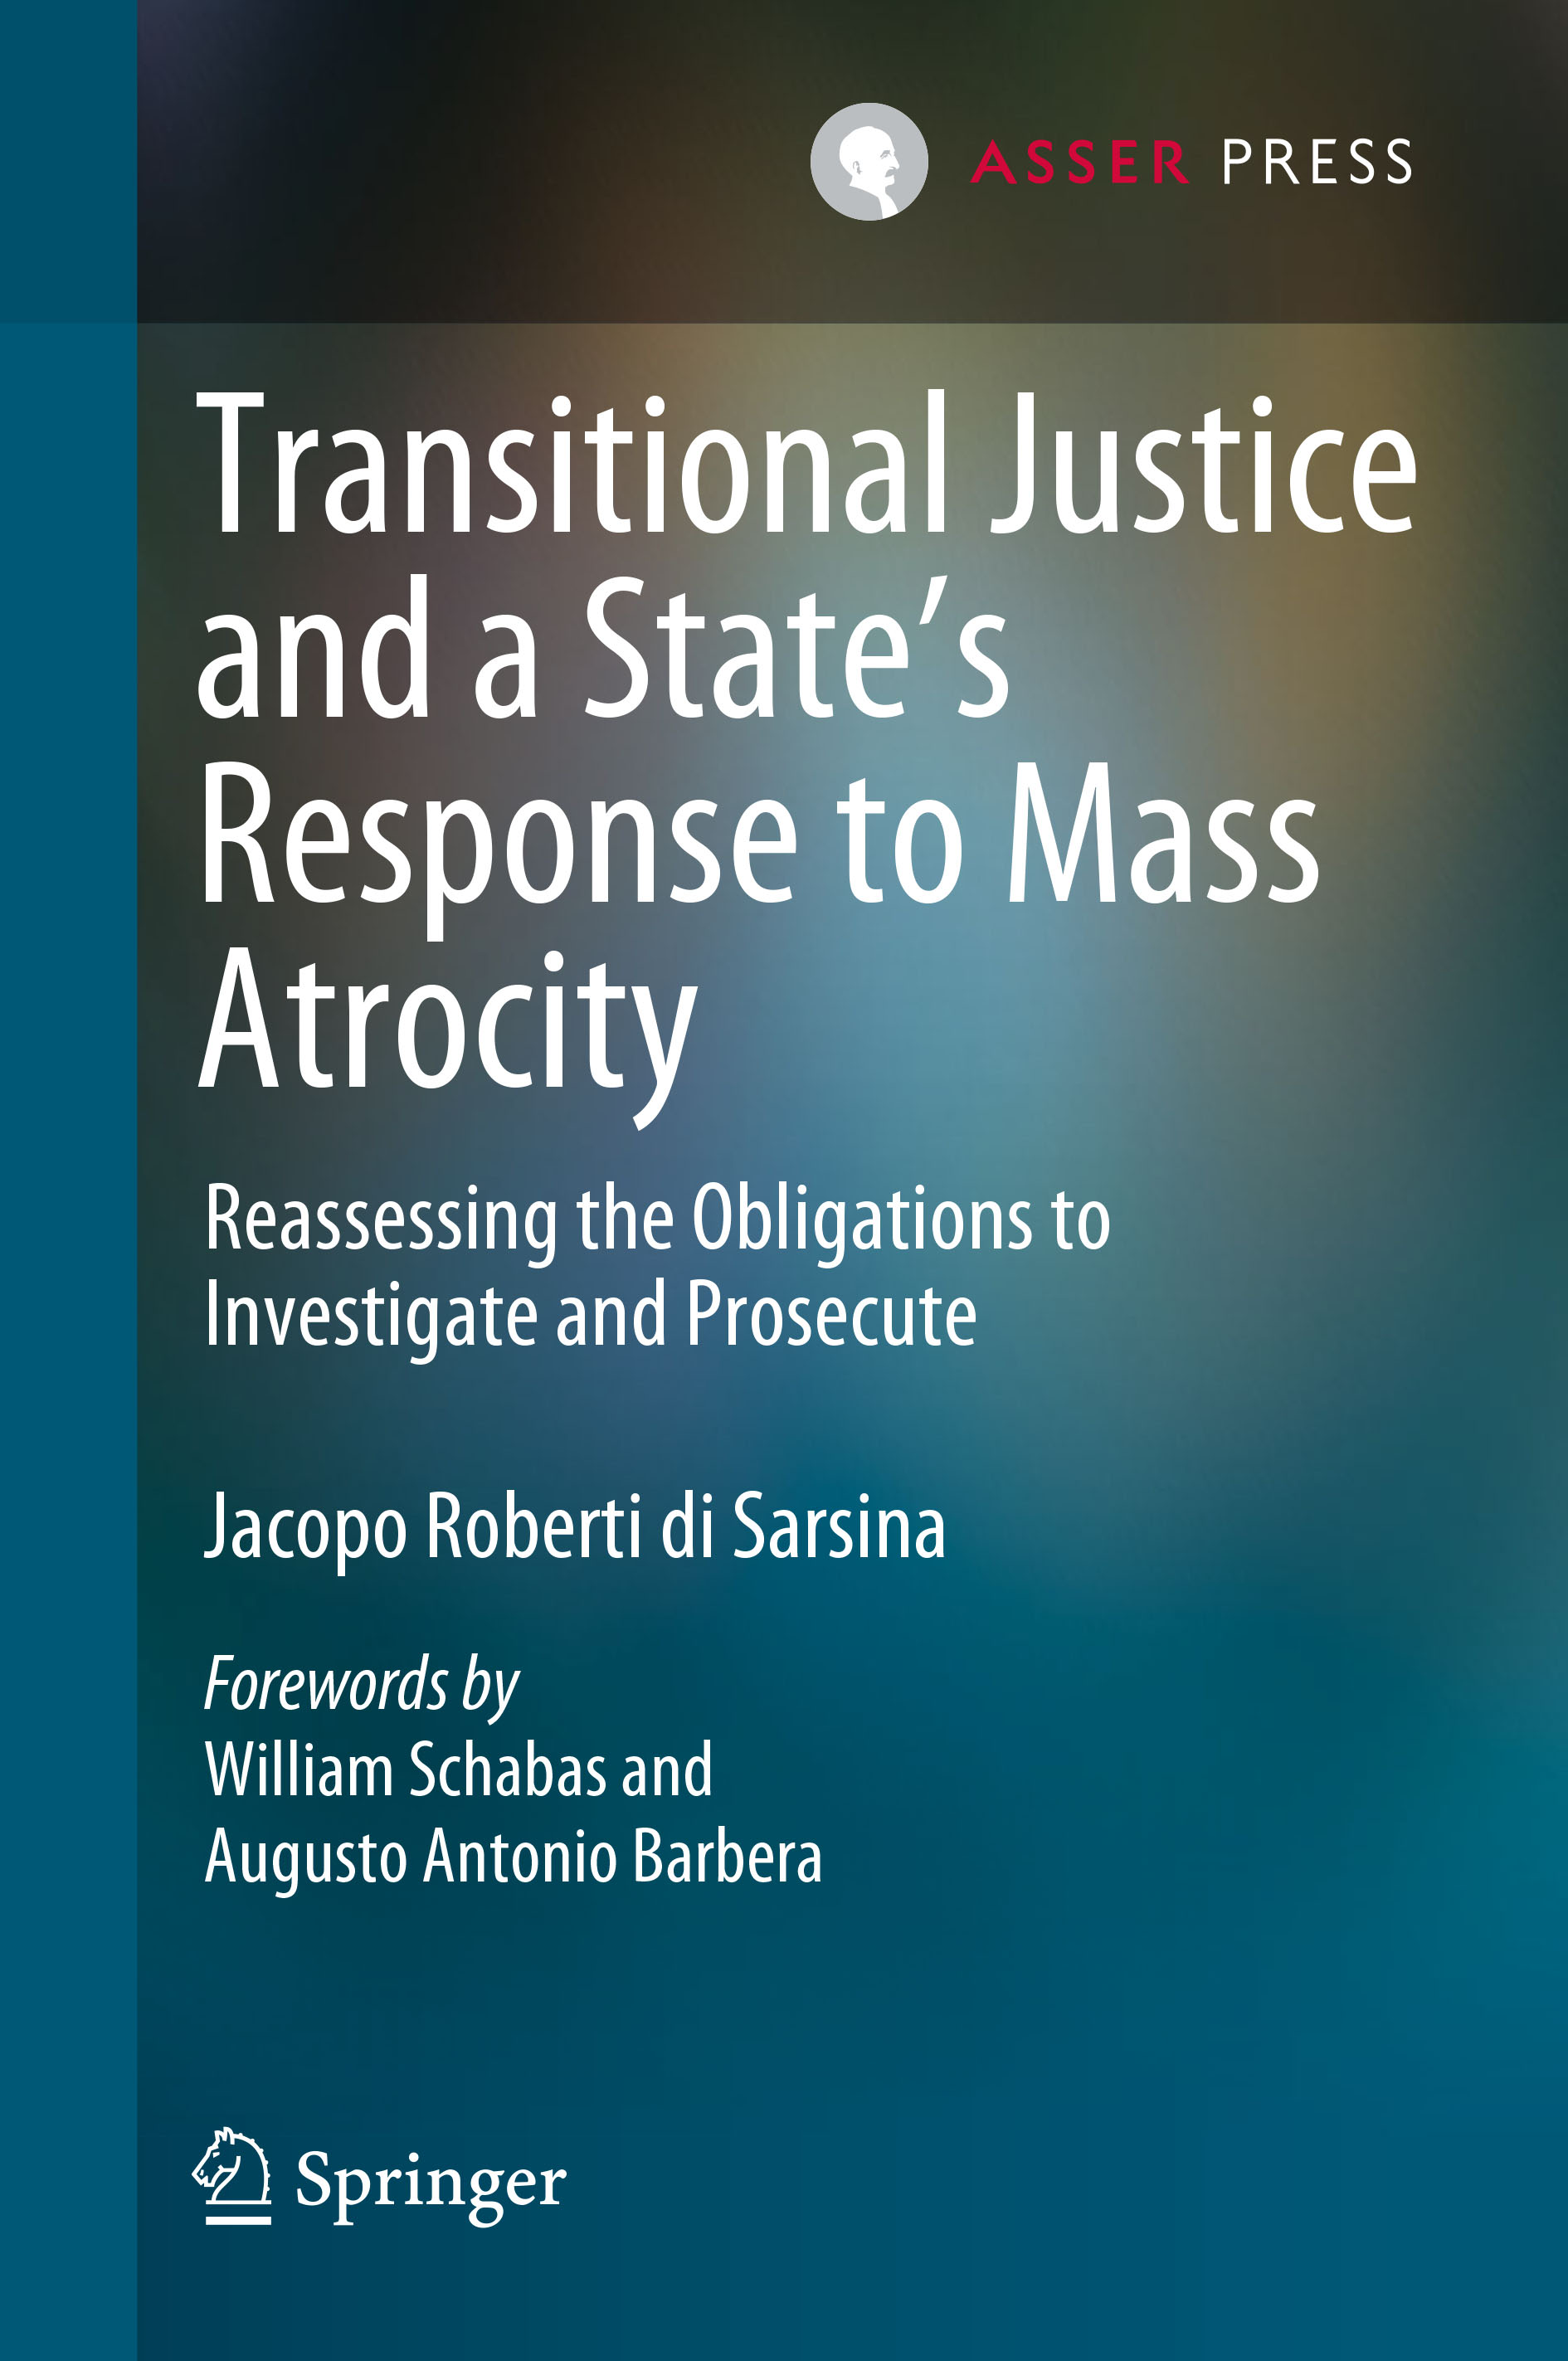 Transitional Justice and a State's Response to Mass Atrocity - Reassessing the Obligations to Investigate and Prosecute